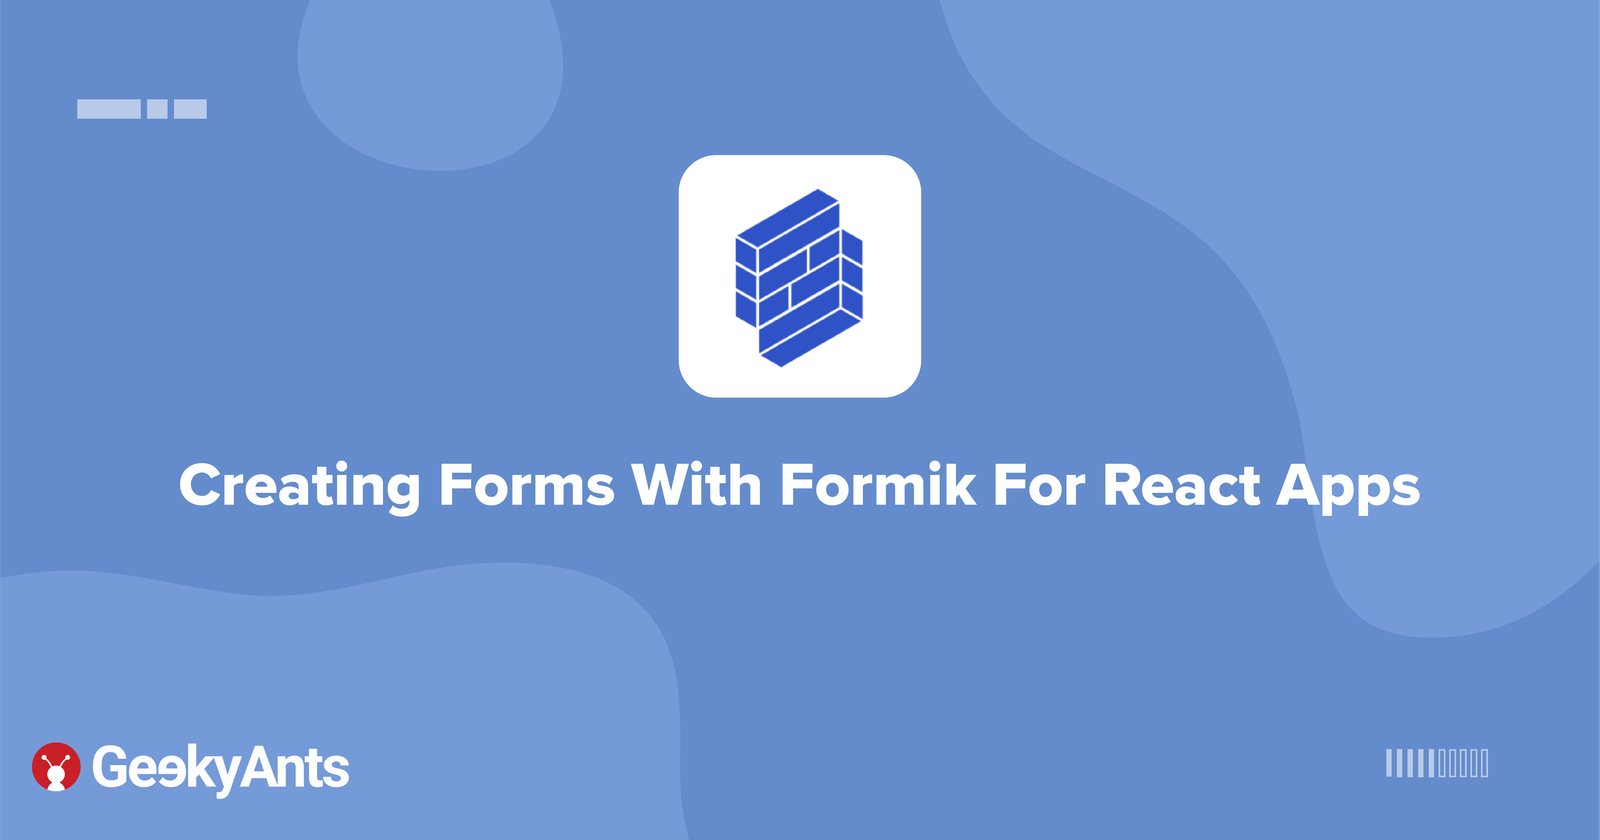 Creating Forms With Formik For React Apps